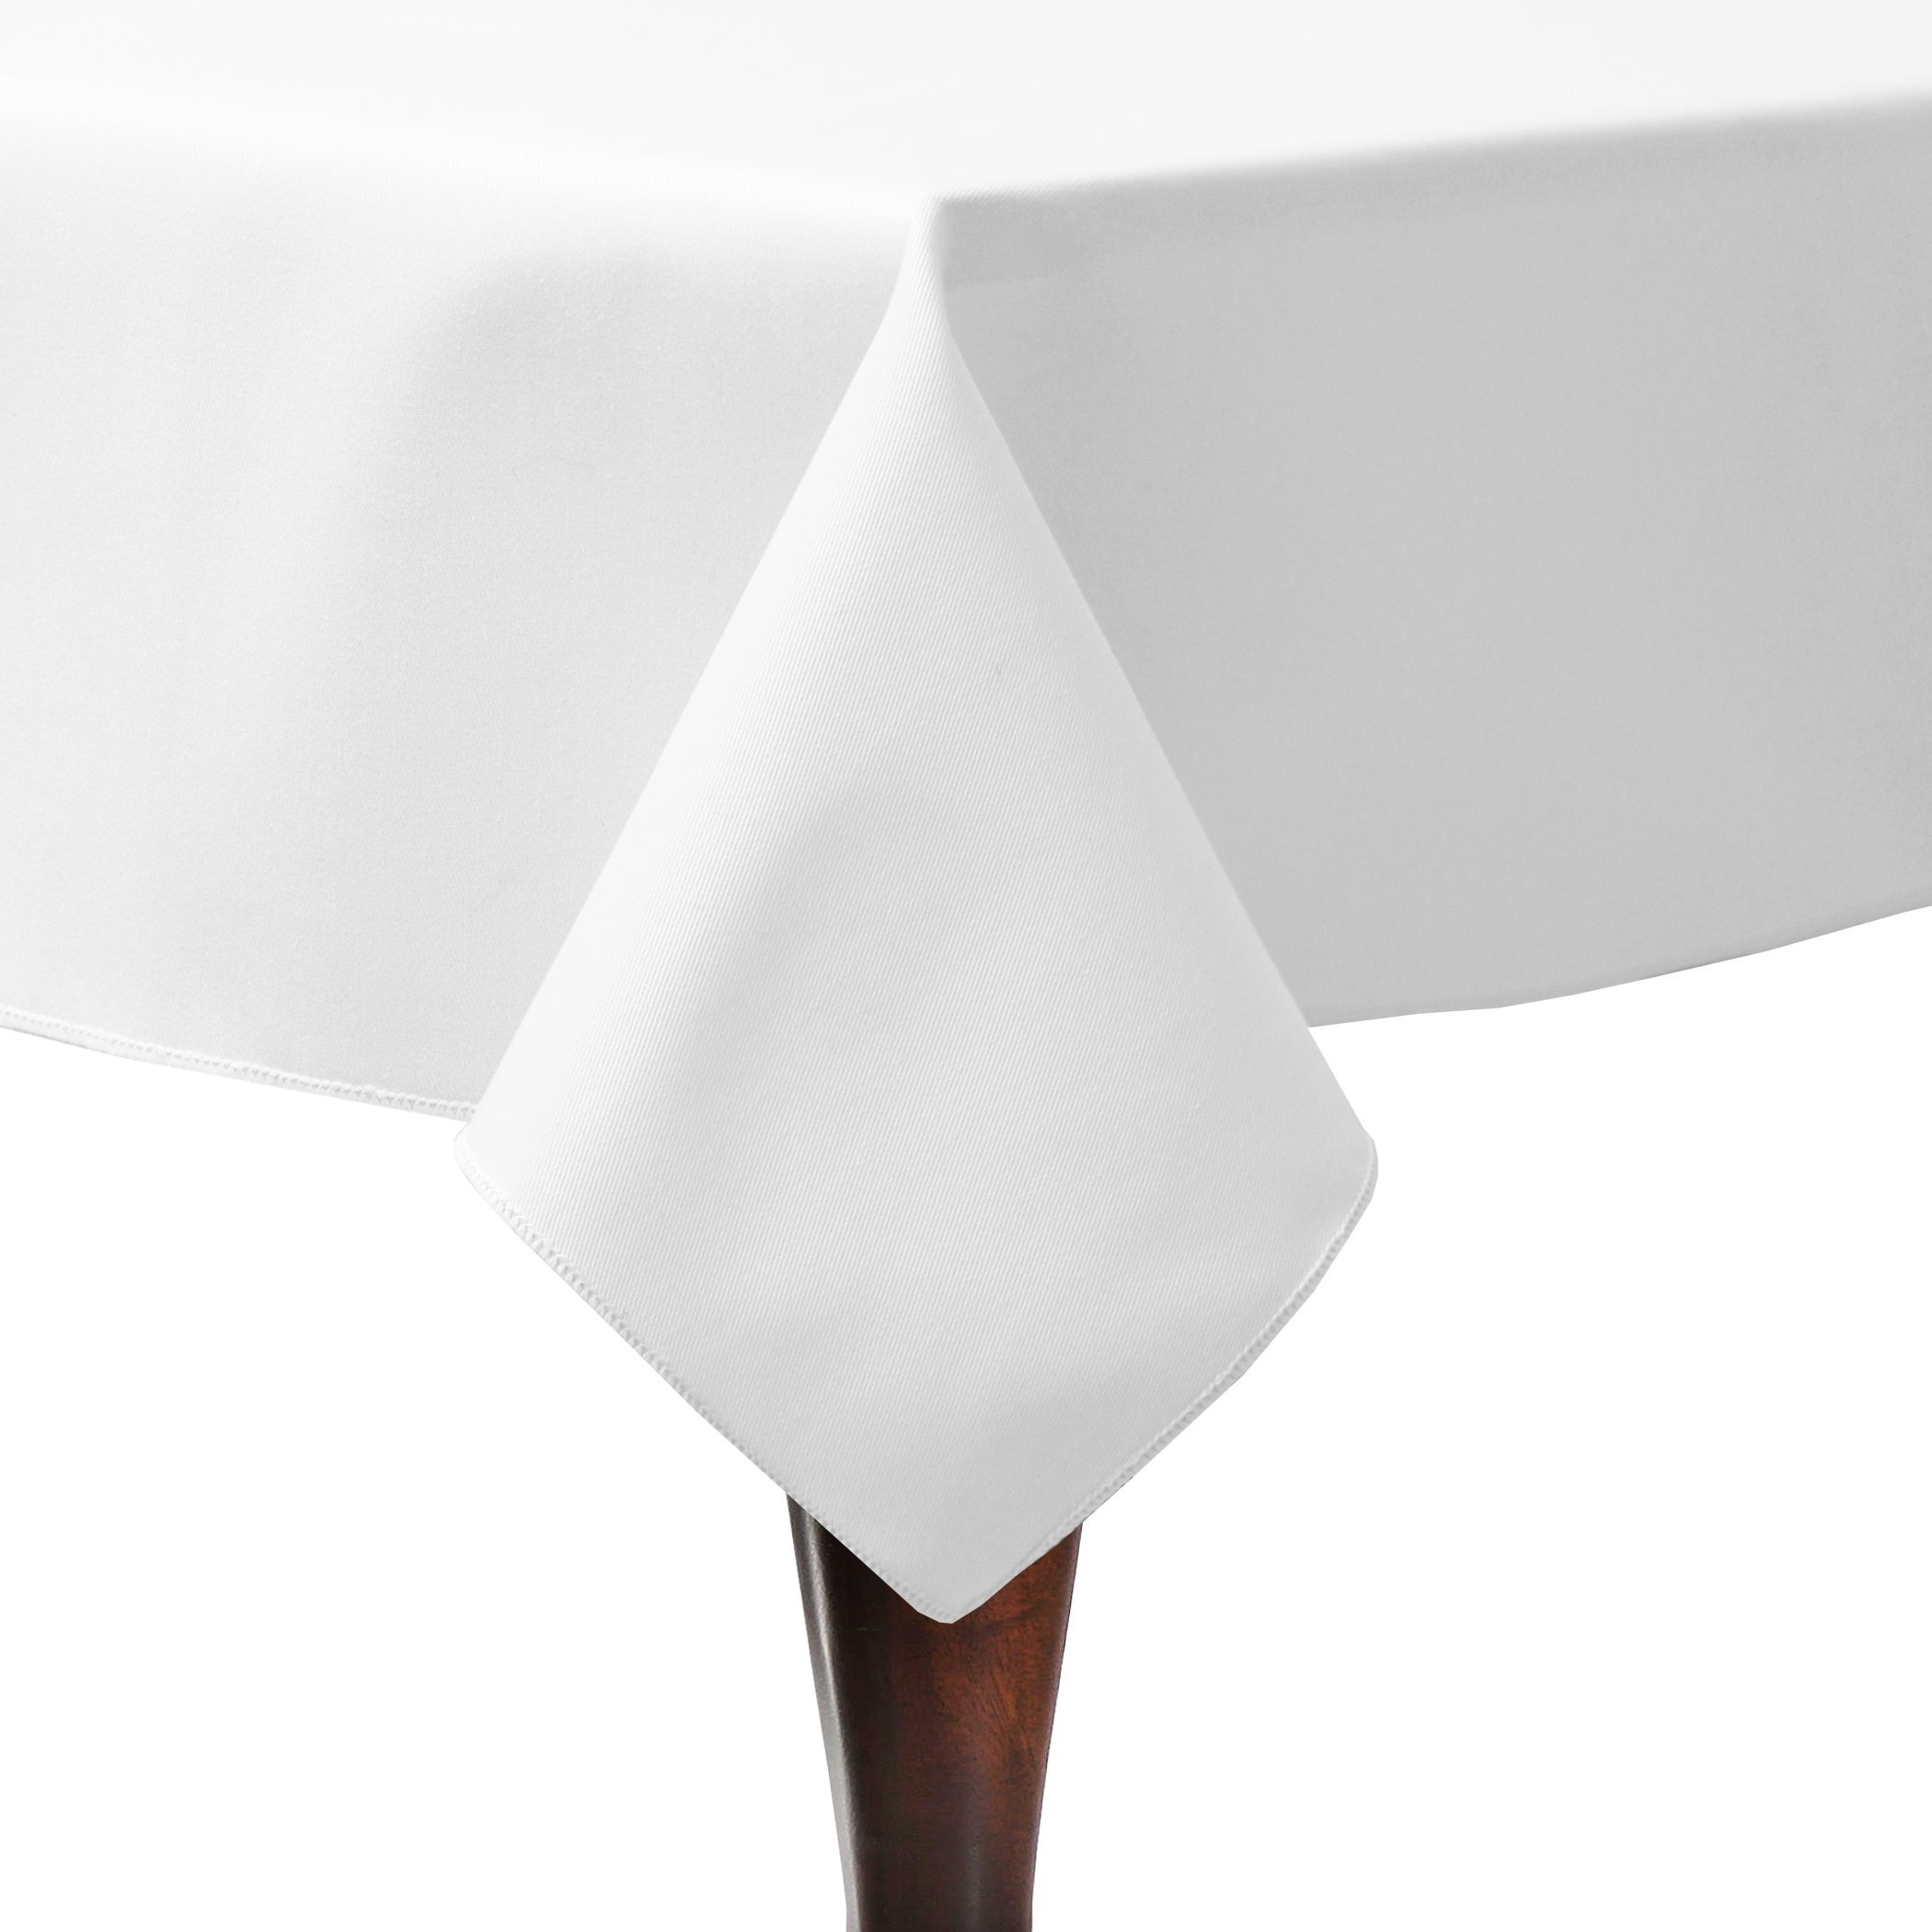 Ultimate Textile (5 Pack) Poly-cotton Twill 60 x 90-Inch Rectangular Tablecloth - for Restaurant and Catering, Hotel or Home Dining use, White